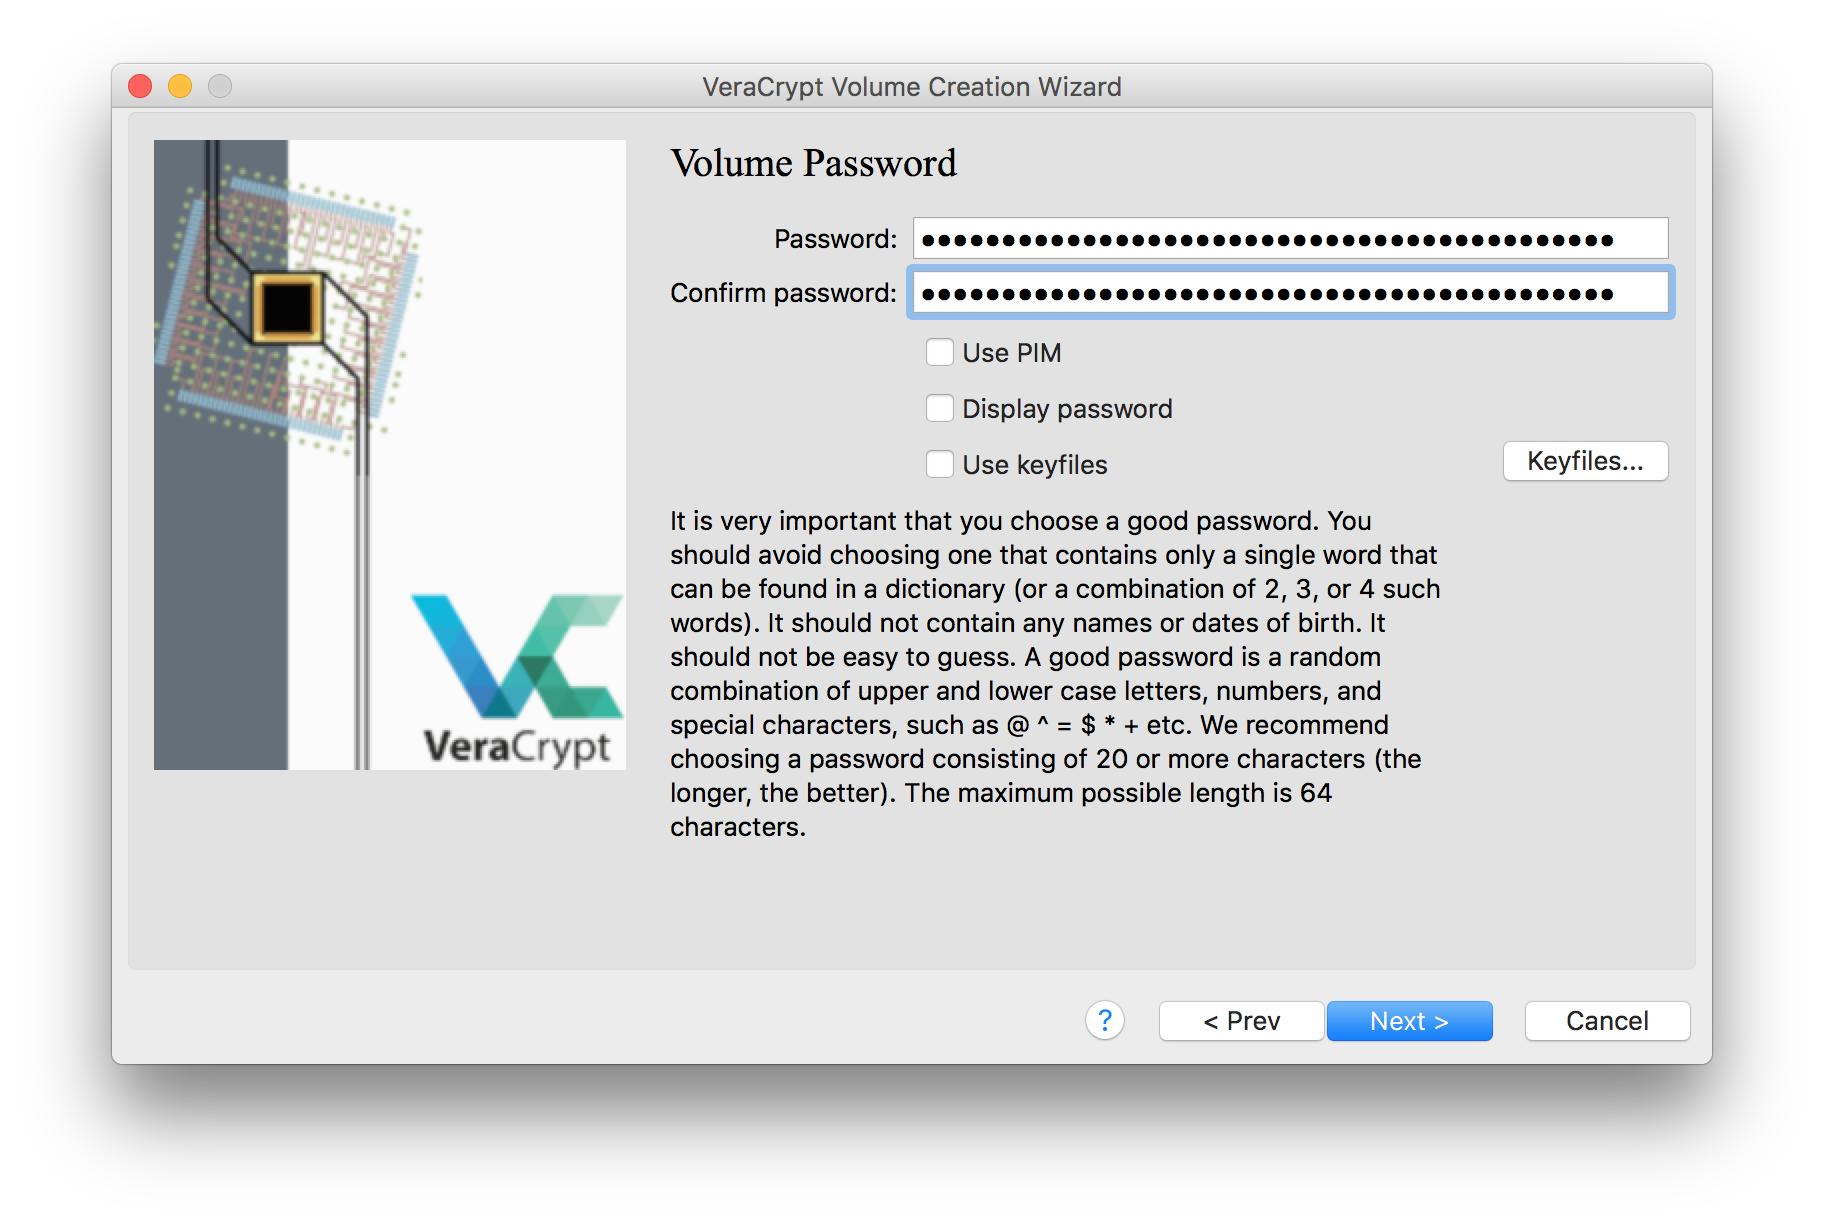 An image of the VeraCrypt volume creation window, with a long passphrase filled in the password selection fields